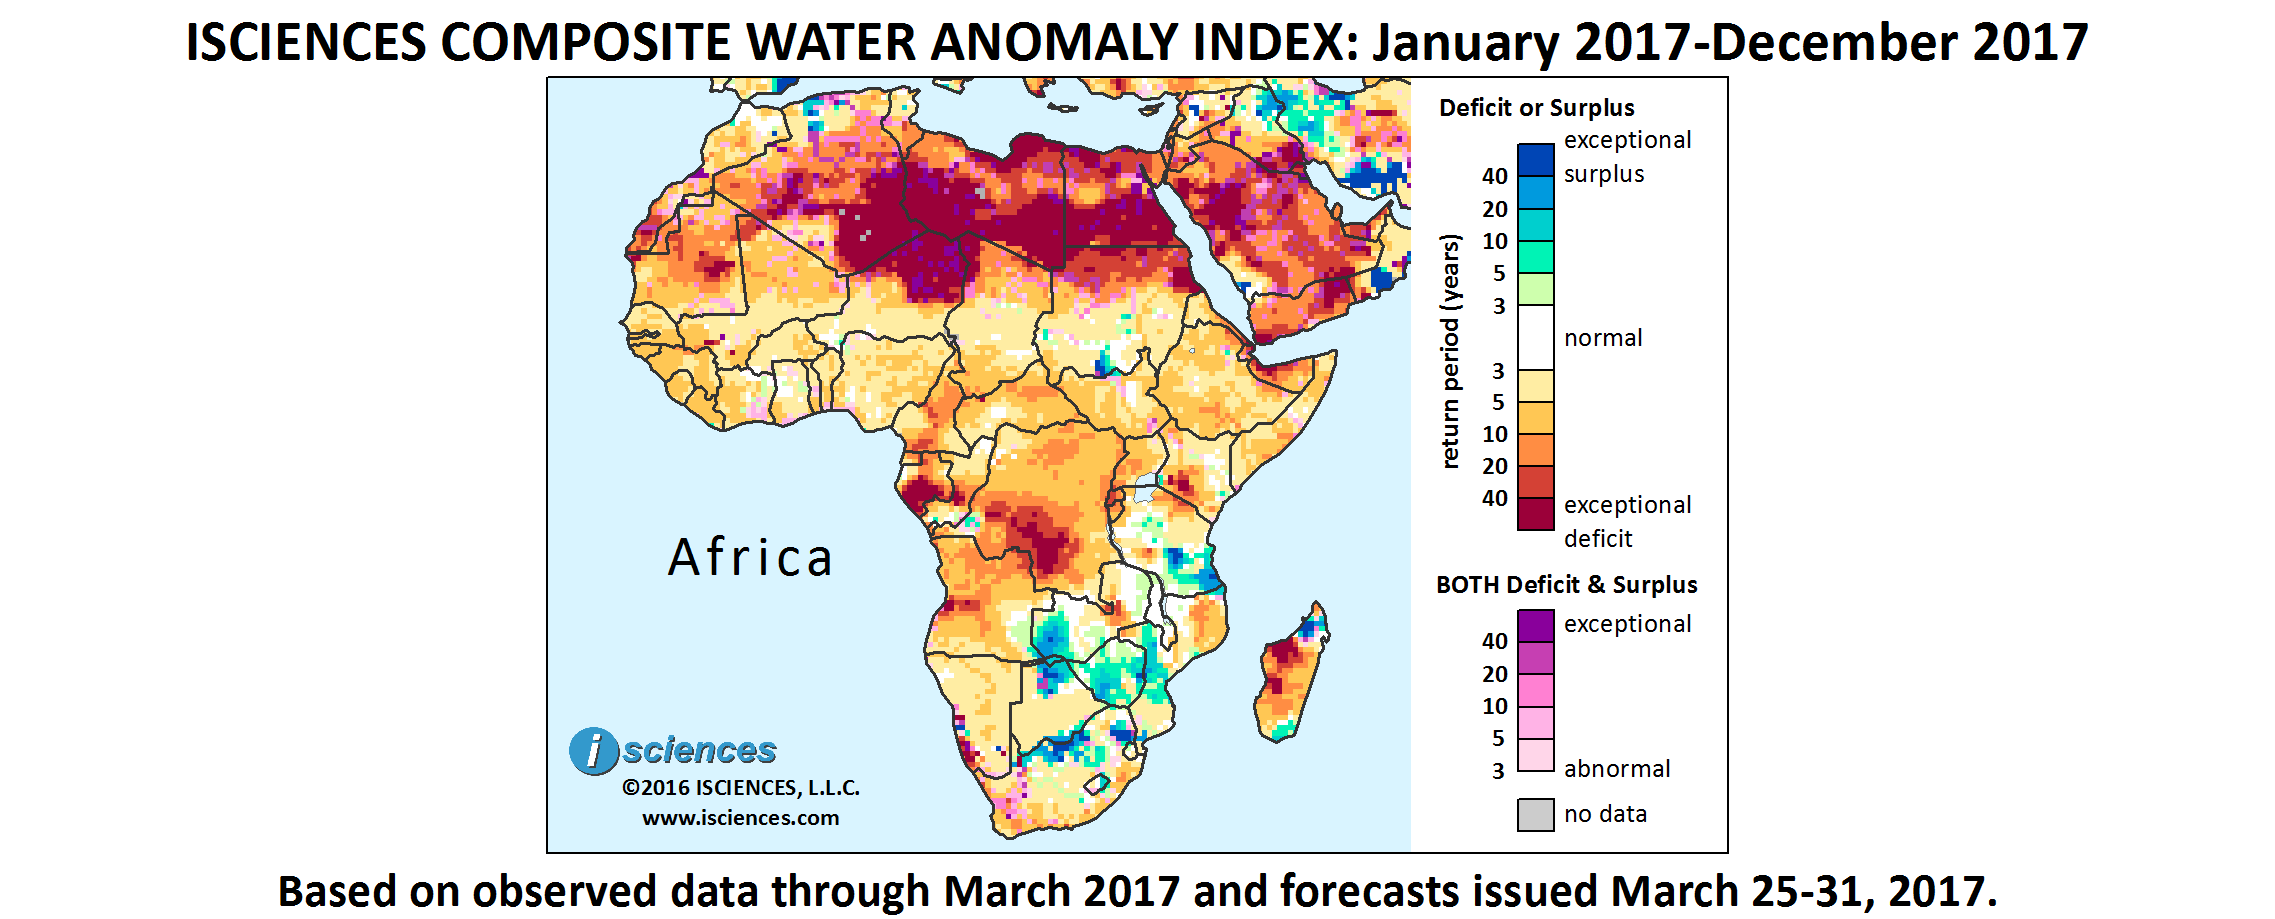 ISciences_Africa_R201703_12mo_twit_pic.png